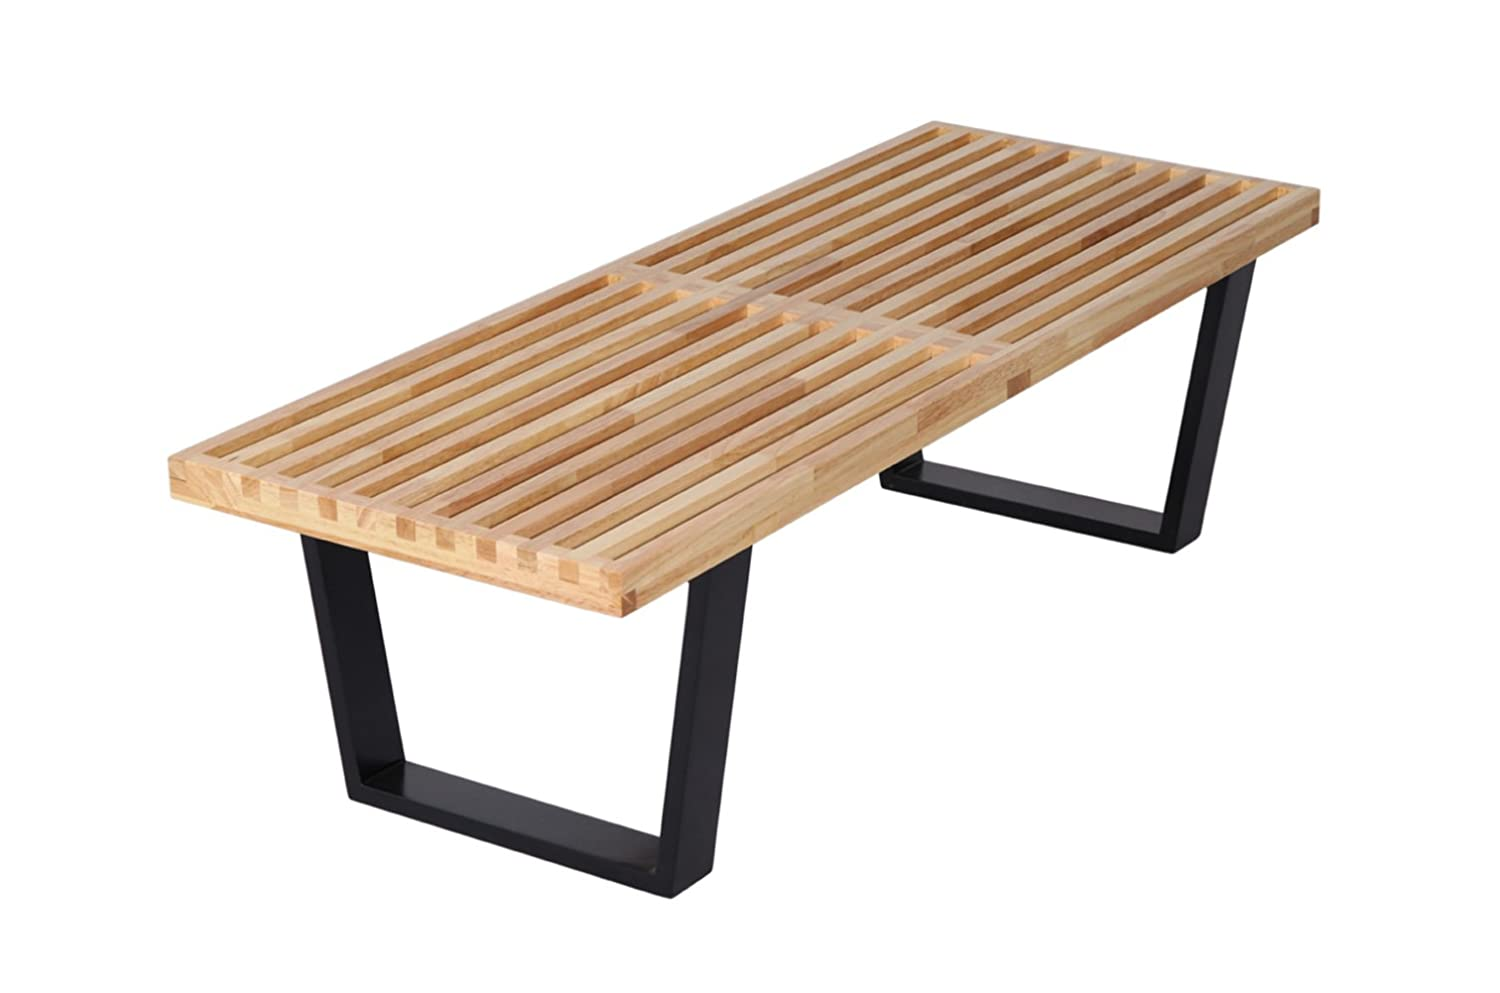 Bedroom bench dimensions - Nelson 4f Bench Mlf Nelson Platform Bench 3 Sizes Rubber Hardwood Top For Smart Superior Streng 4 Feet